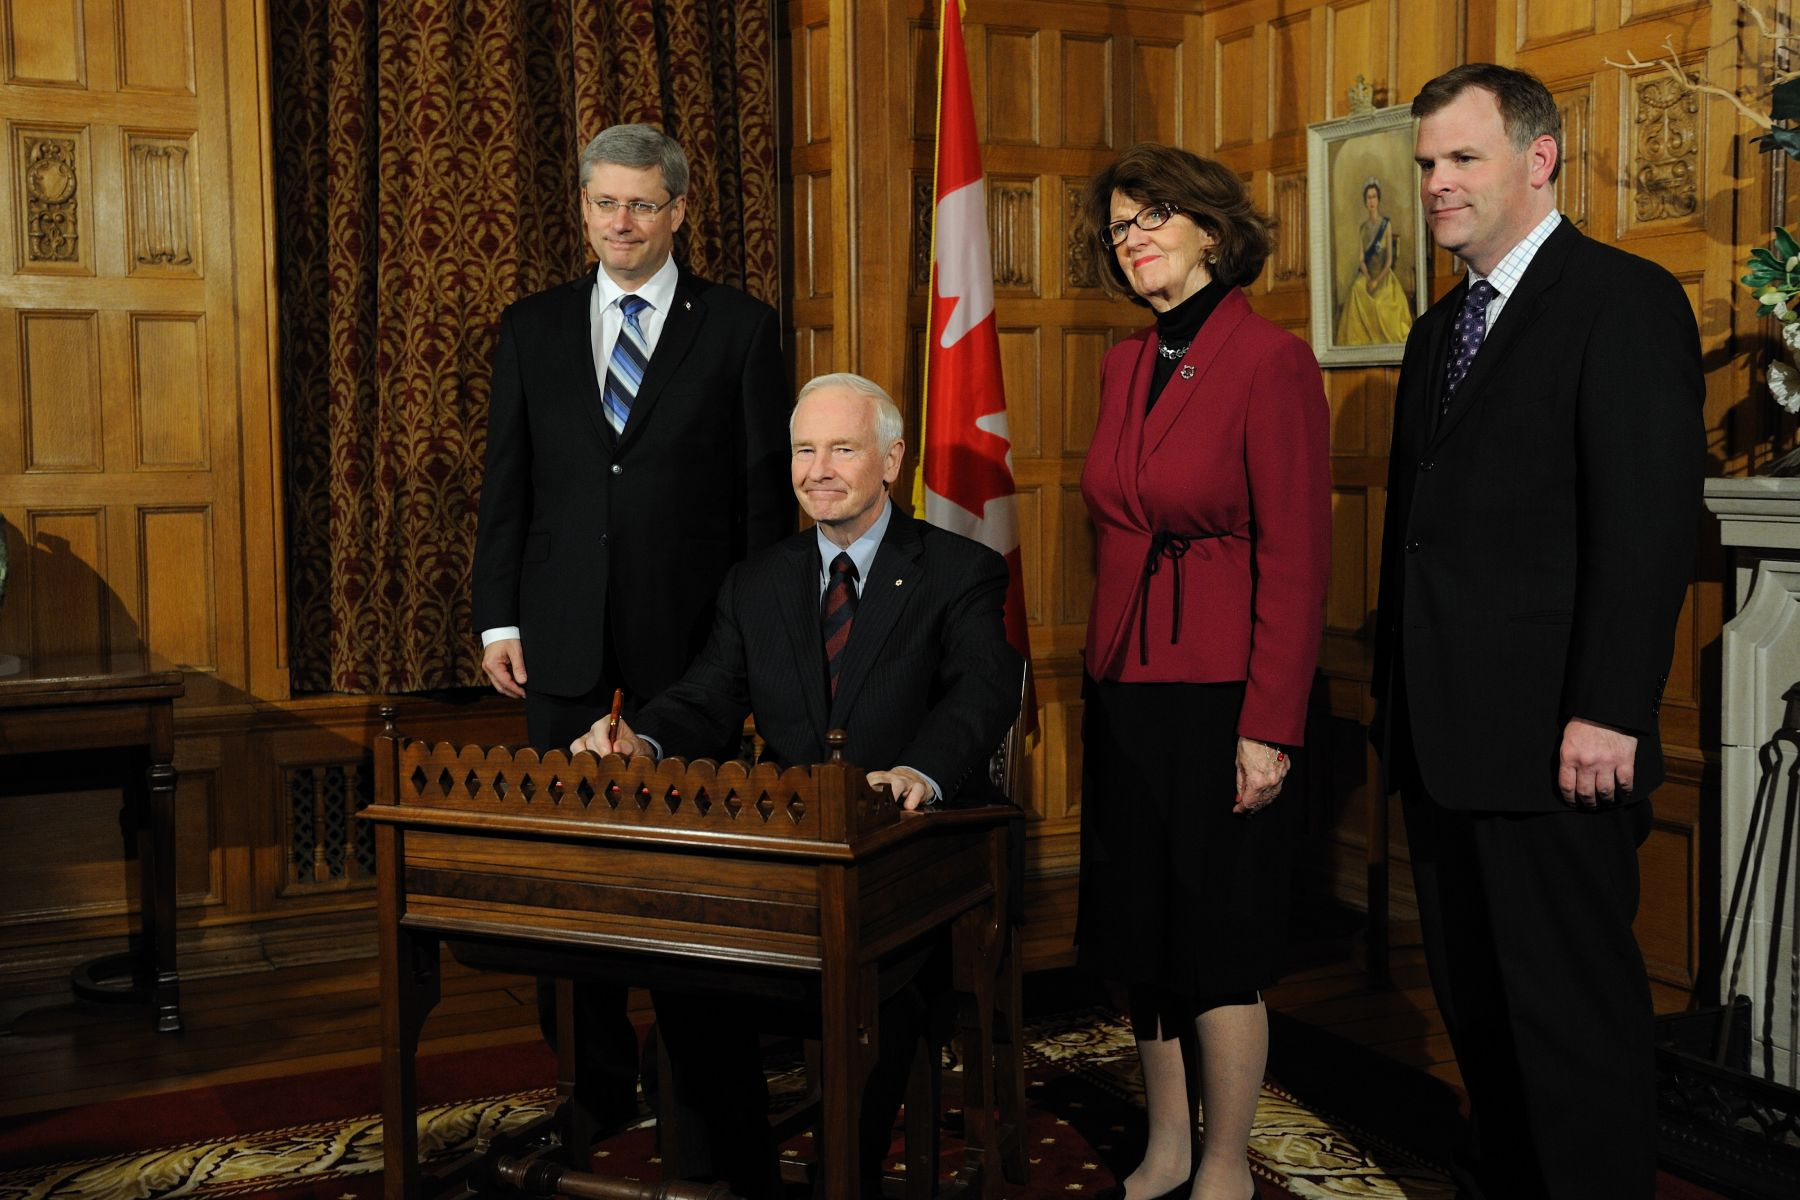 The Governor General signed attestation documents in the Chambers of the Senate Speaker in the presence of the Prime Minister of Canada the Right Honourable Stephen Harper and Leaders of Government in the Senate and the House of Commons the Honourable Marjory Lebreton and the Honourable John Baird.